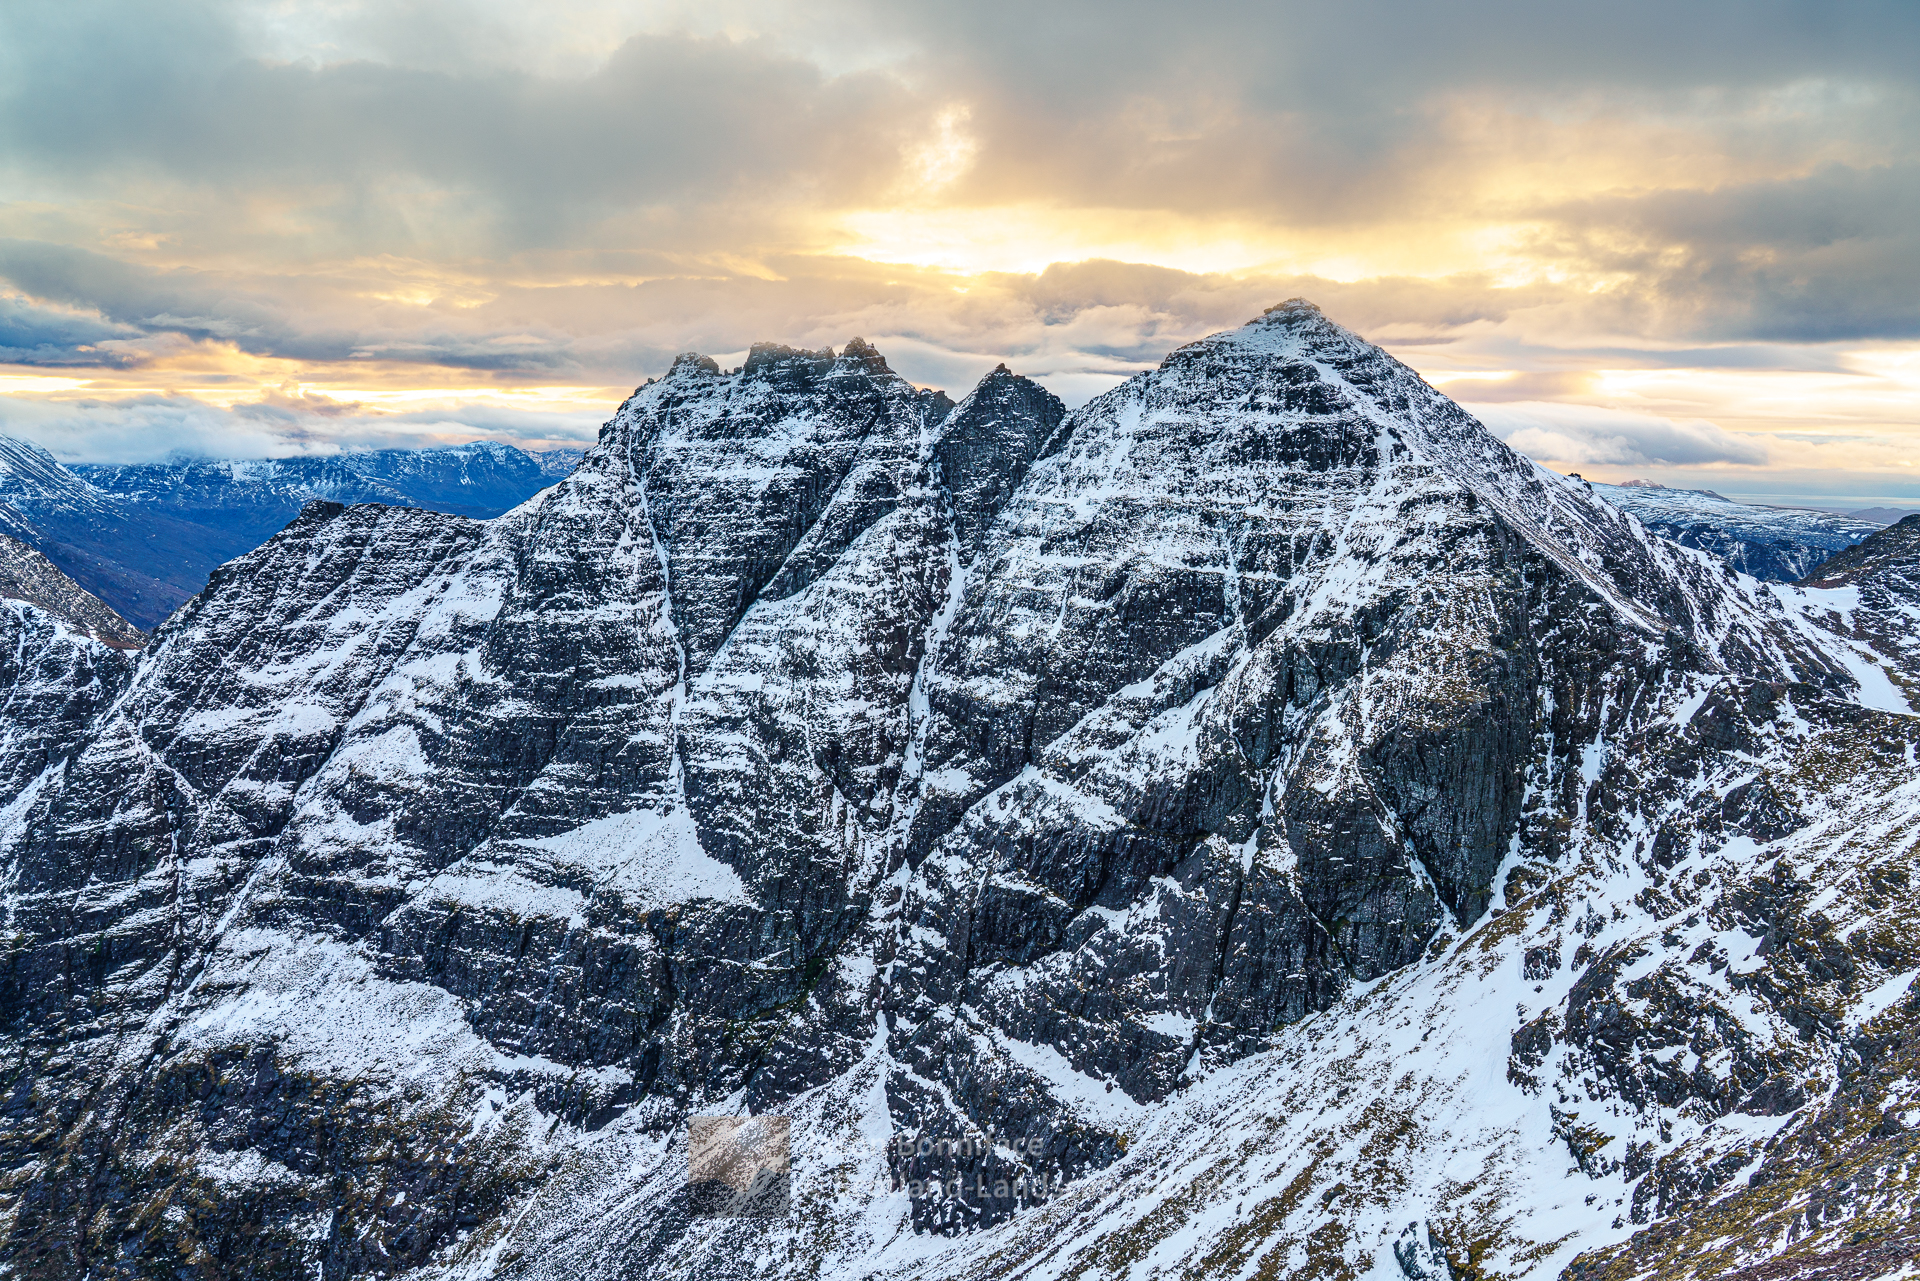 Corrag Bhuide, Lord Berkeley's Seat and Sgurr Fiona